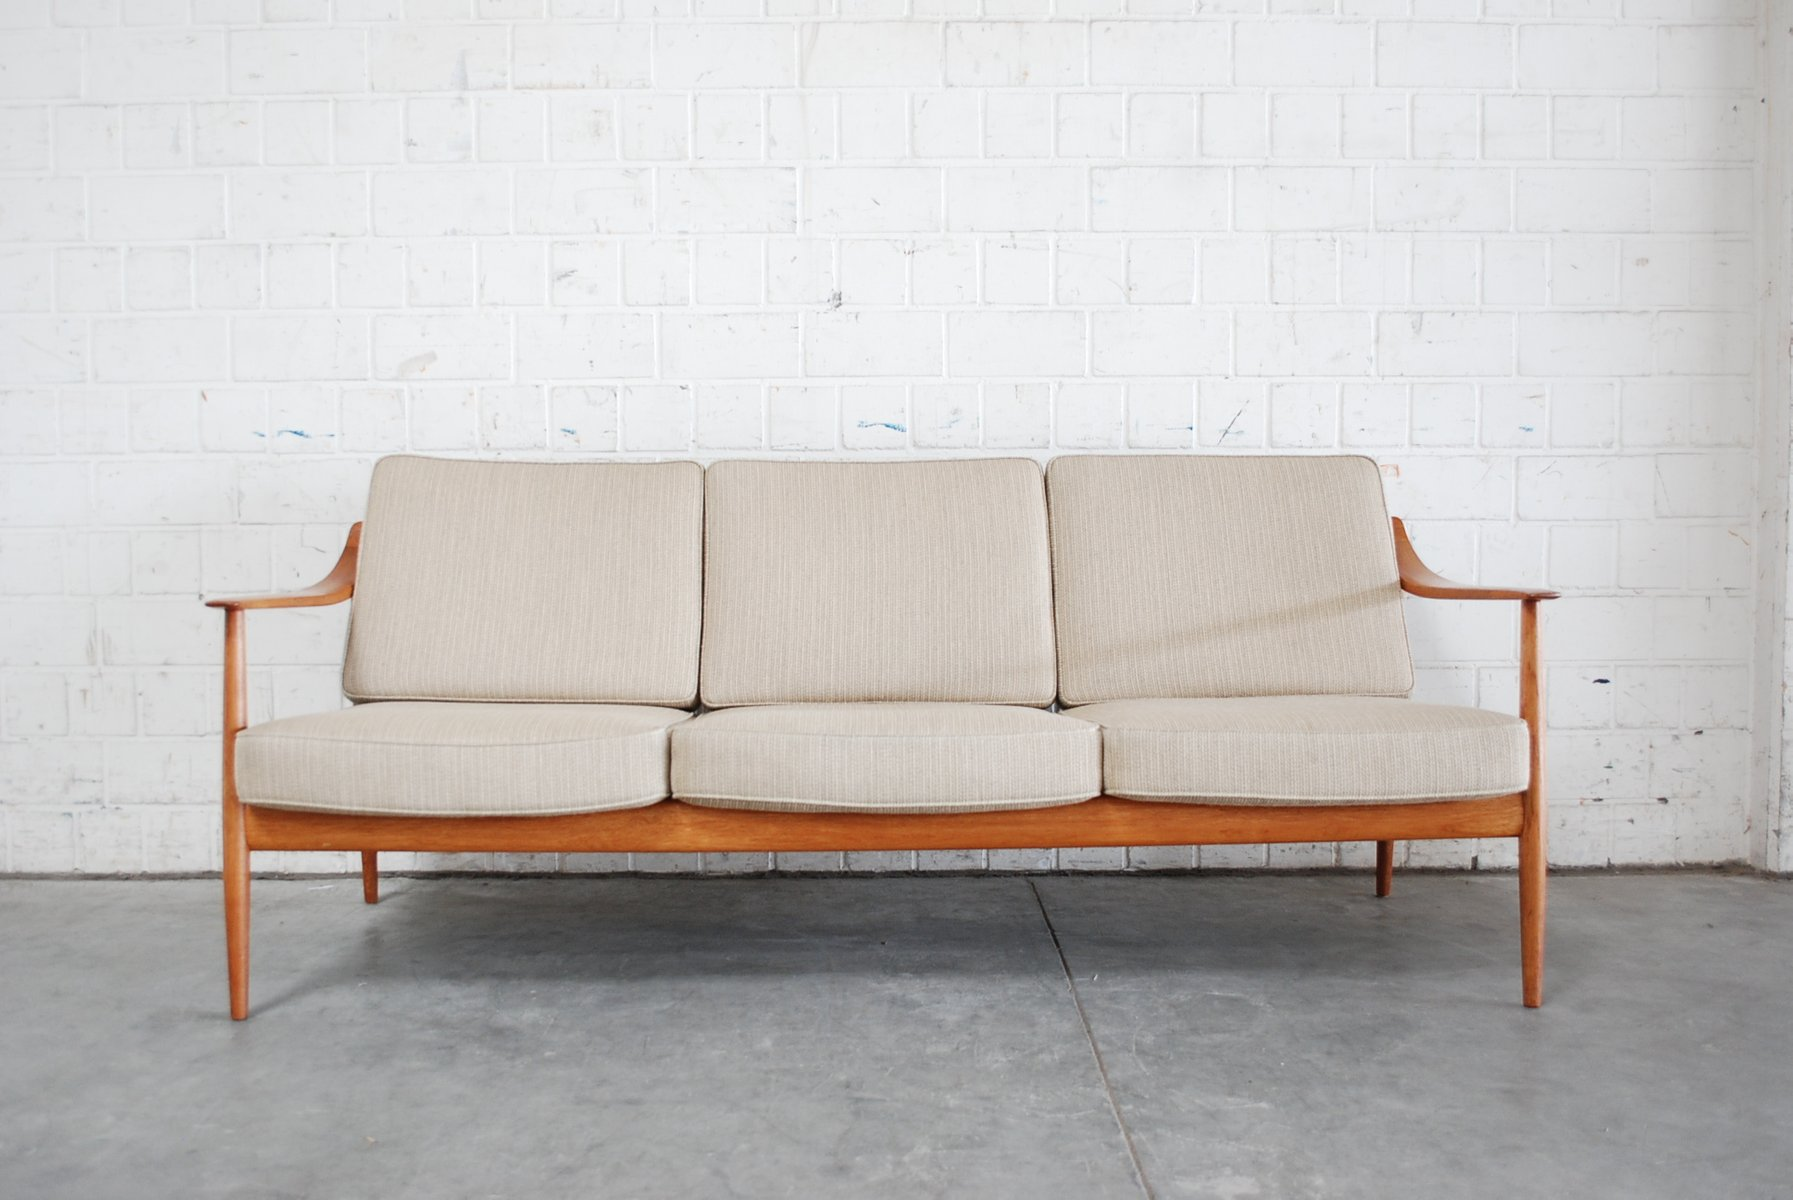 Scandinavian Sofas For Sale Danish Teak Sofa By Knoll Antimott For Sale At Pamono